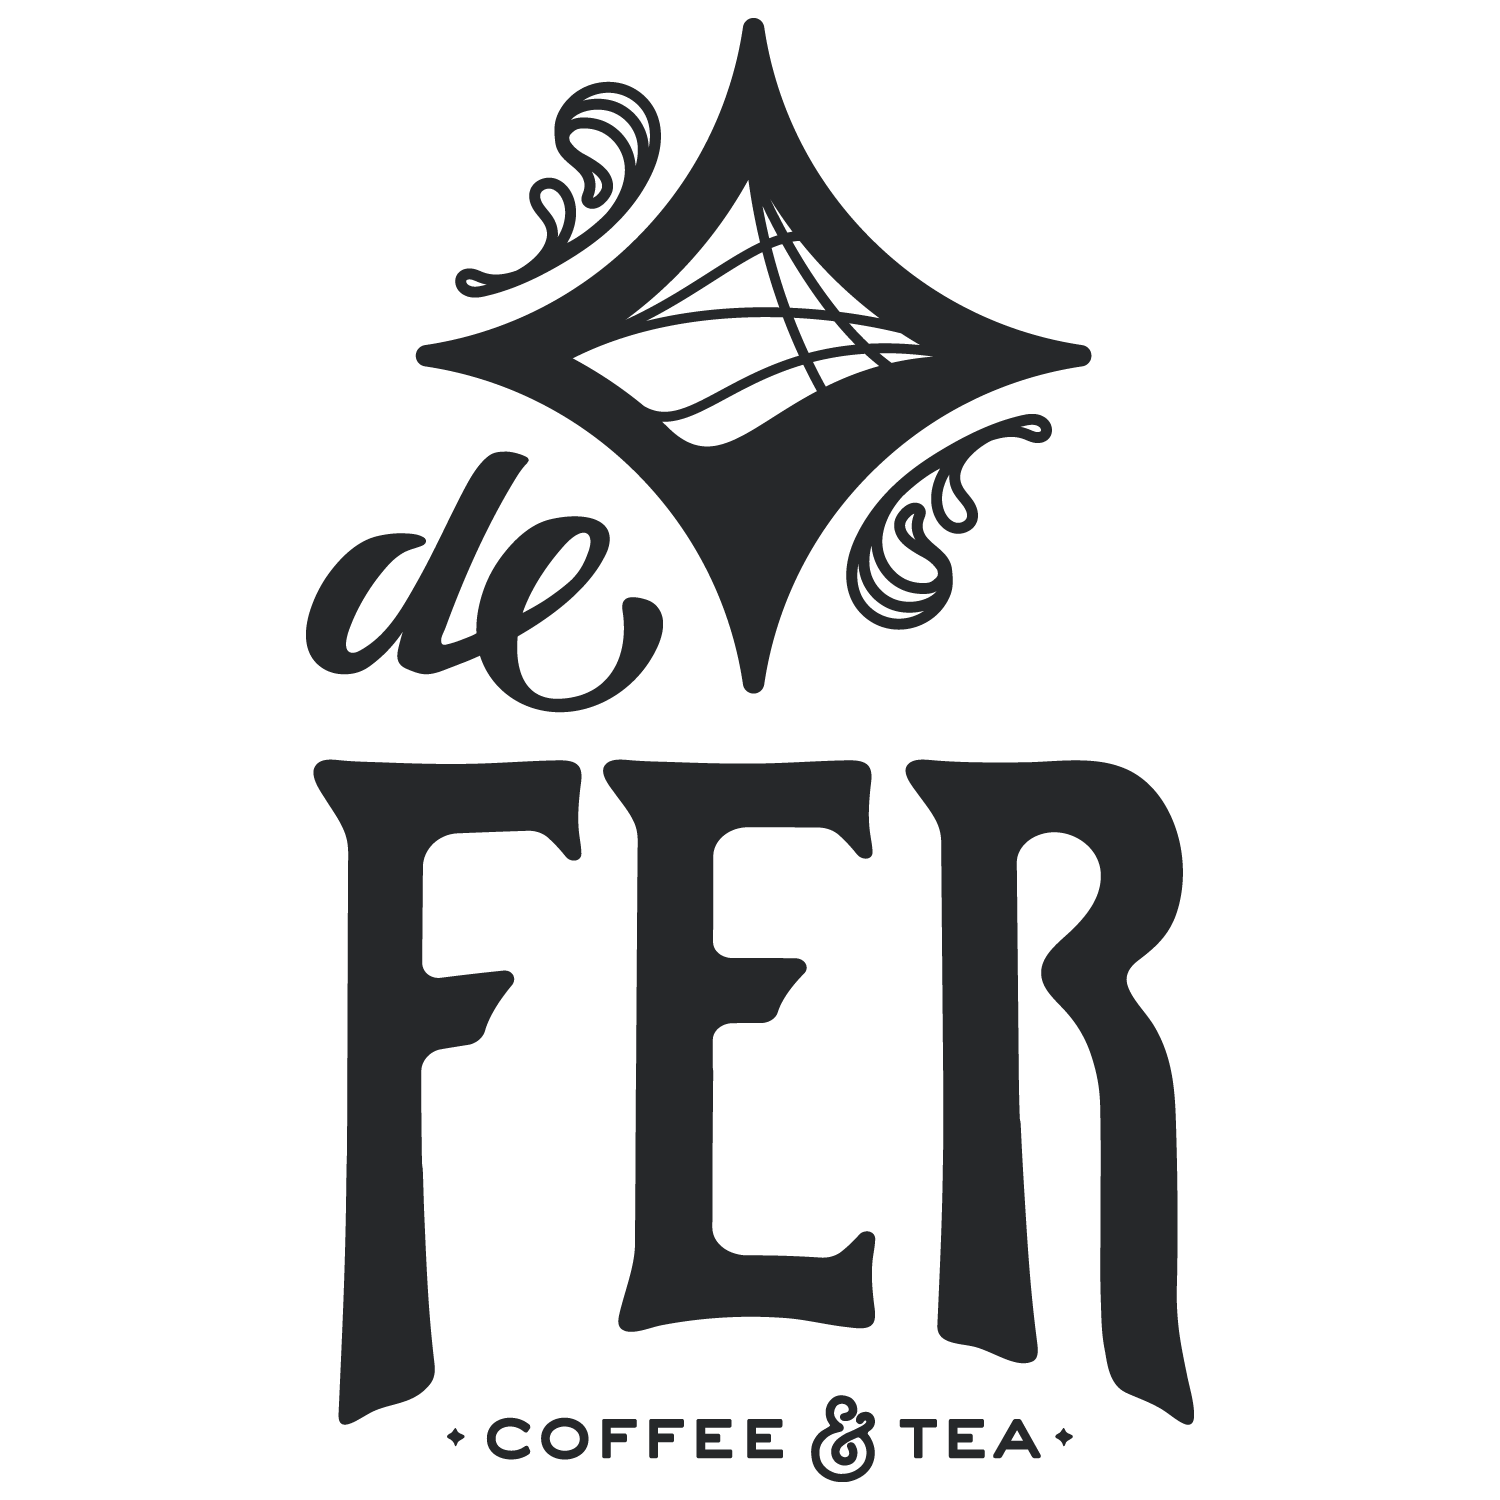 De Fer Coffee & Tea